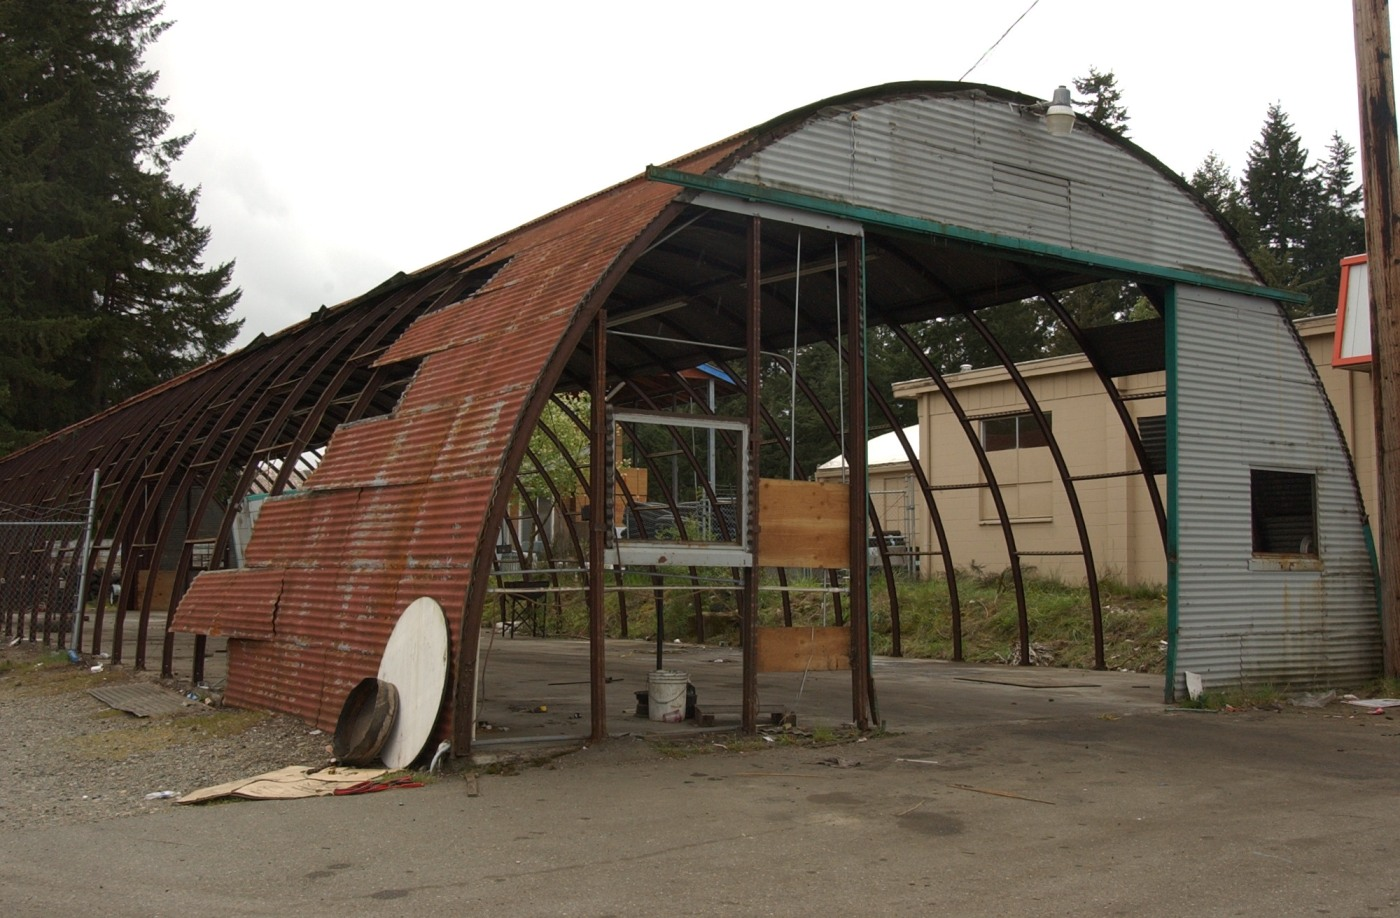 Military Surplus Quonset Huts For Sale >> Style Guide Quonset Huts 1941 To 1960 Washington State